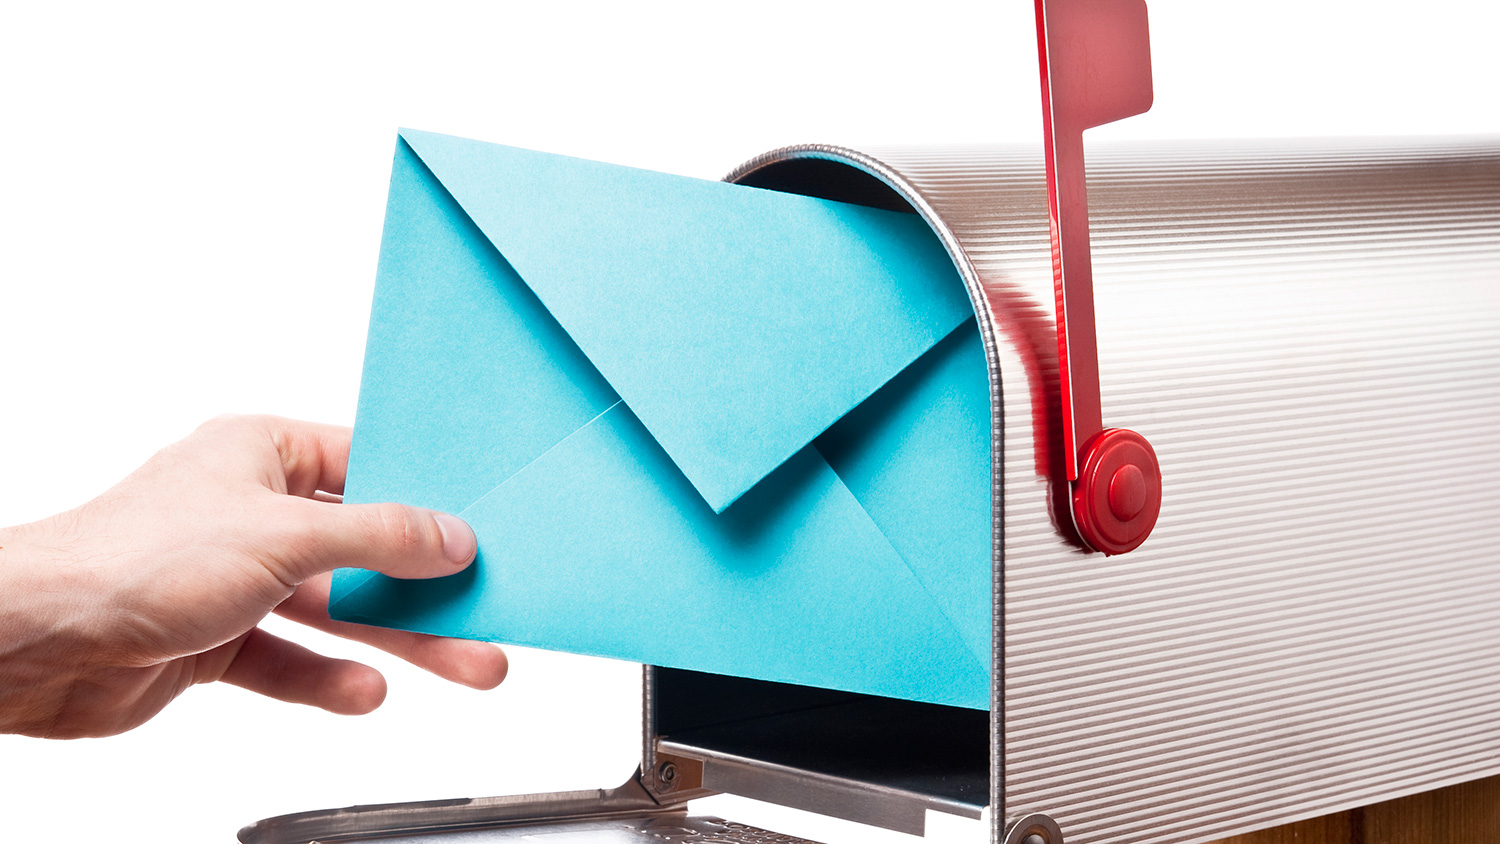 Postcard Mailing is the Perfect Way to Develop Your Business